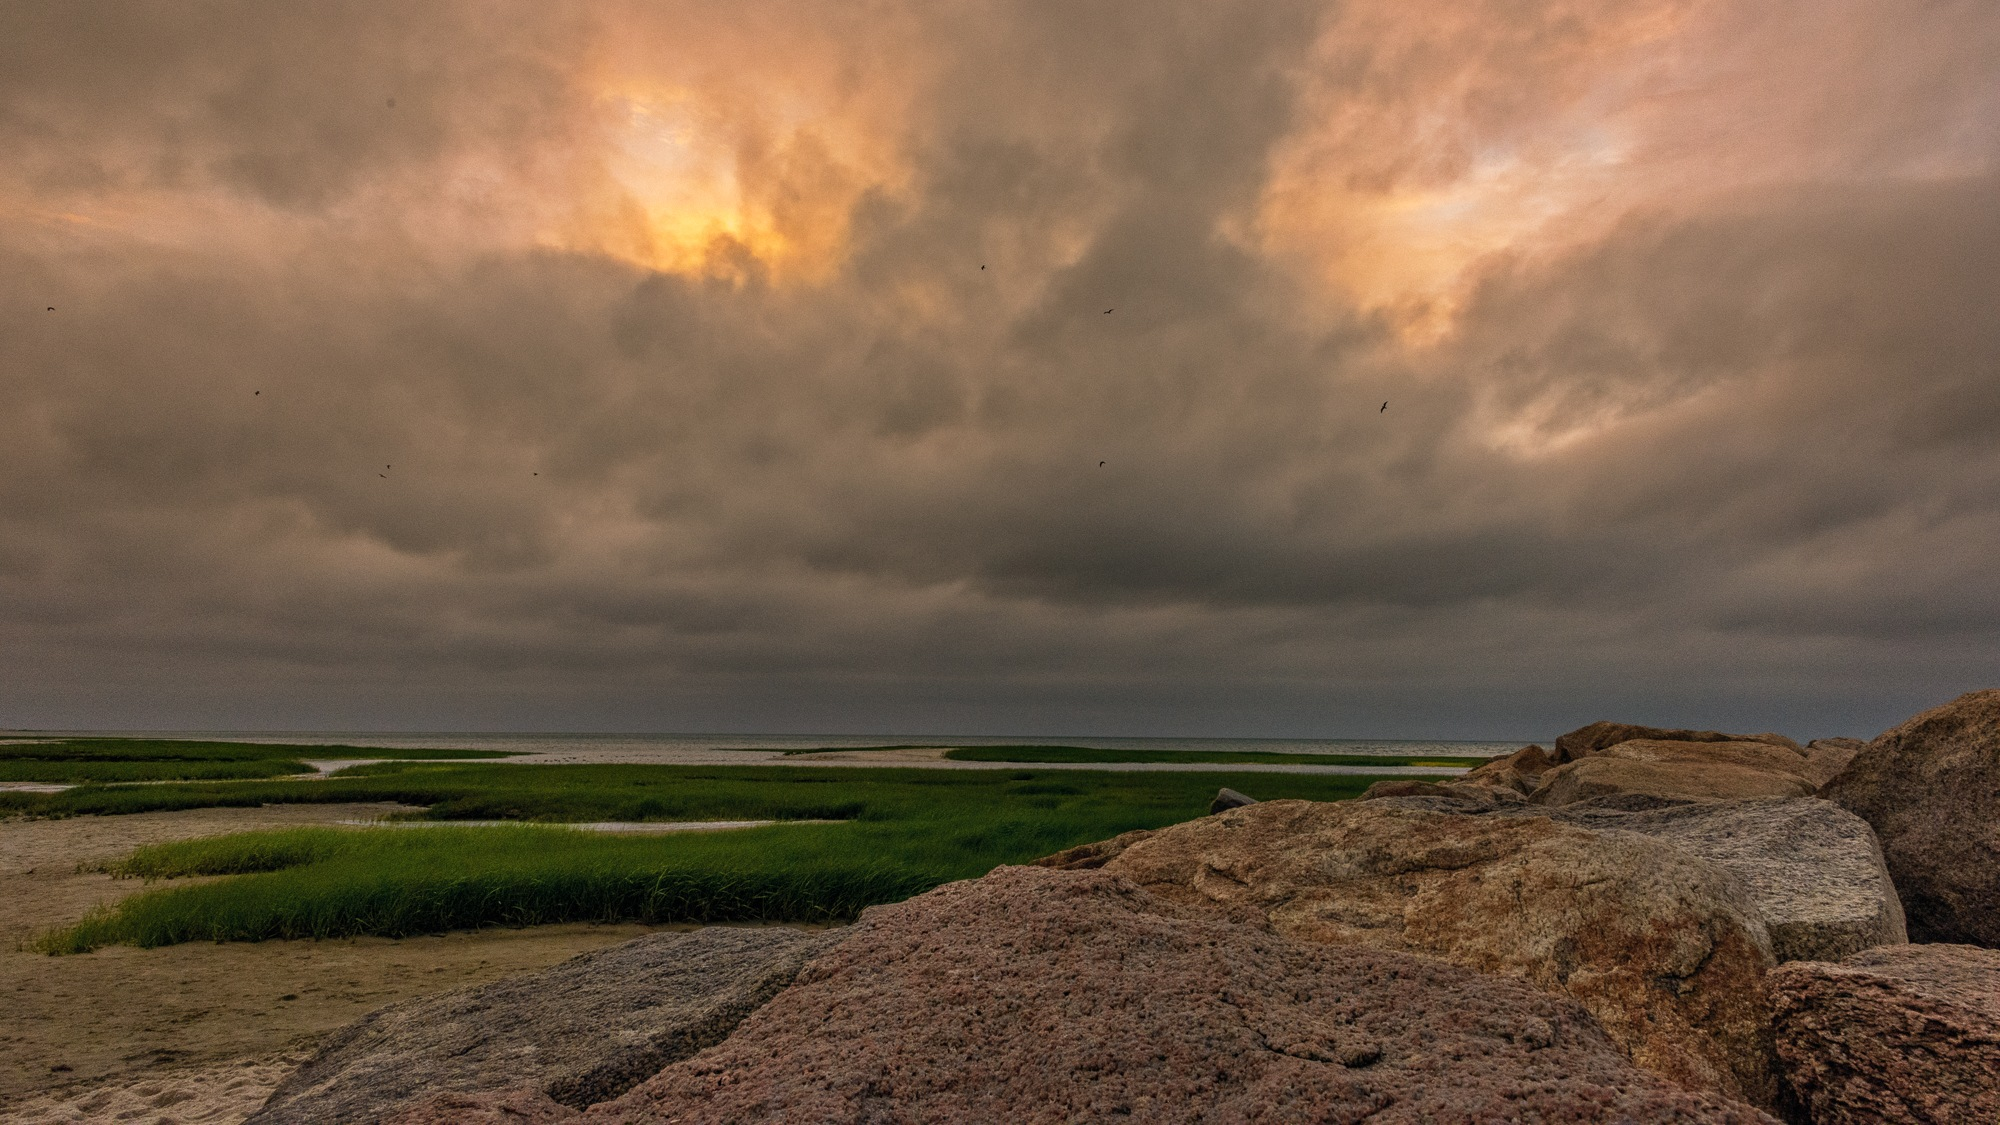 Cloudy Sunset at Paines Creek Landing on Cape Cod by Steve Director